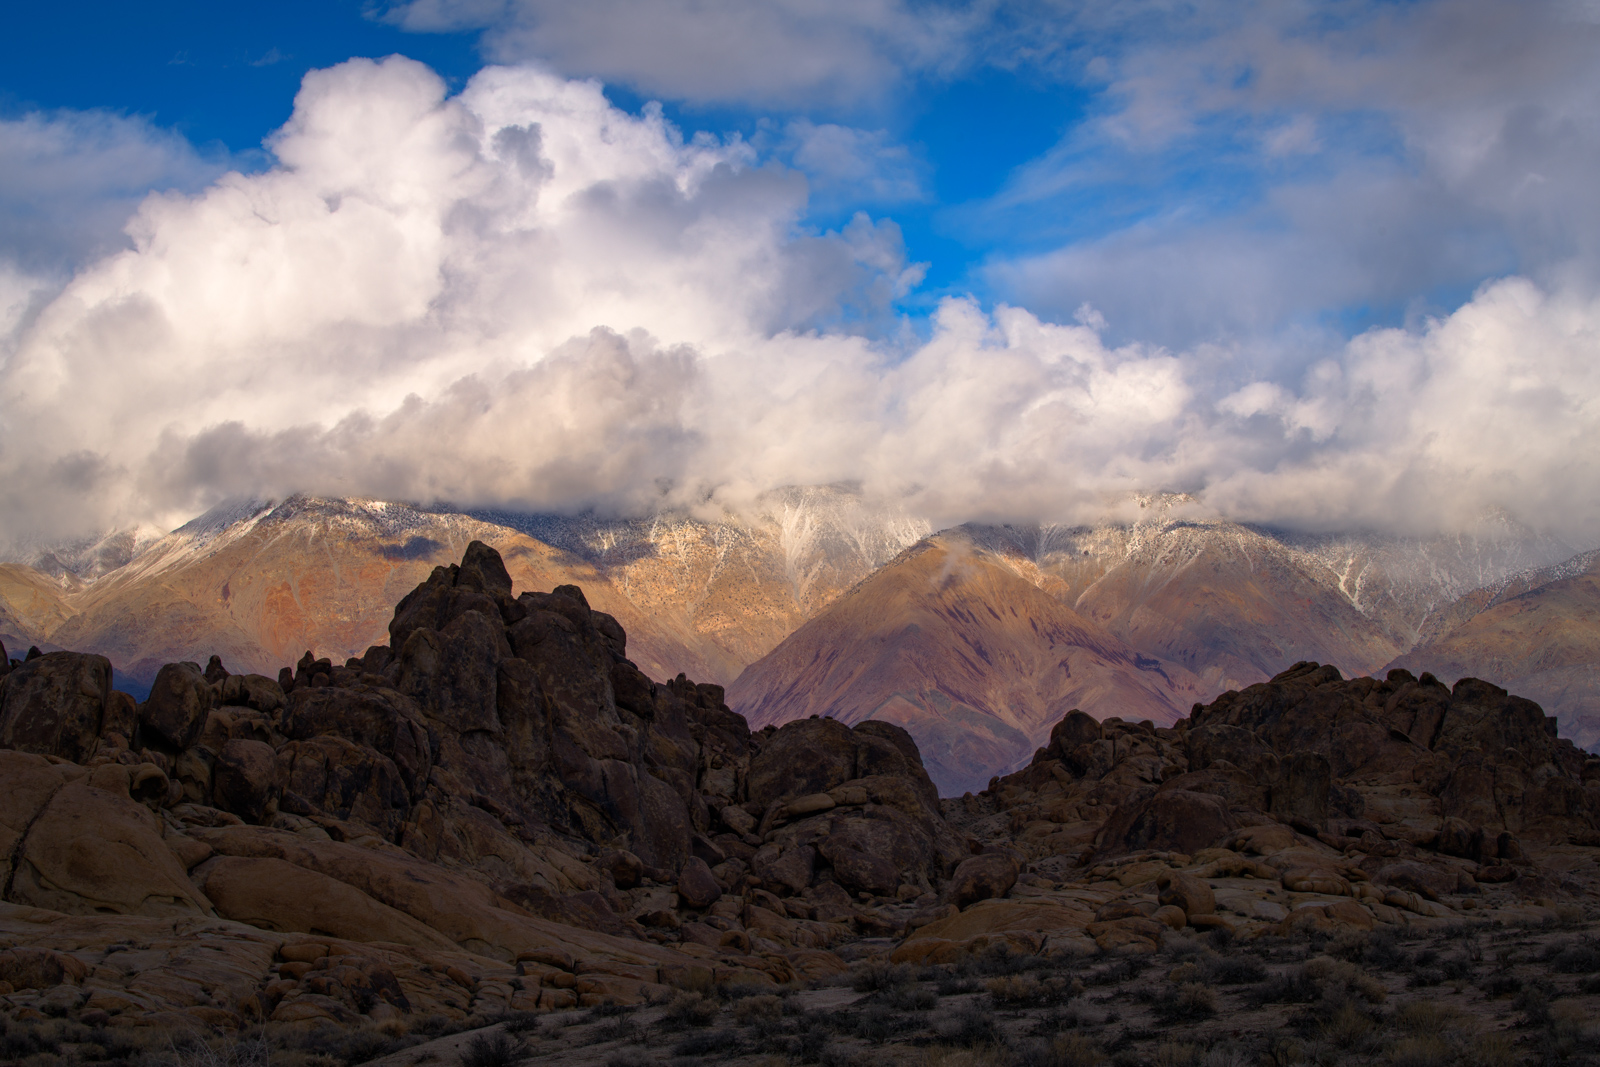 The Inyo Mountains with fresh snow from the Alabama Hills, California.